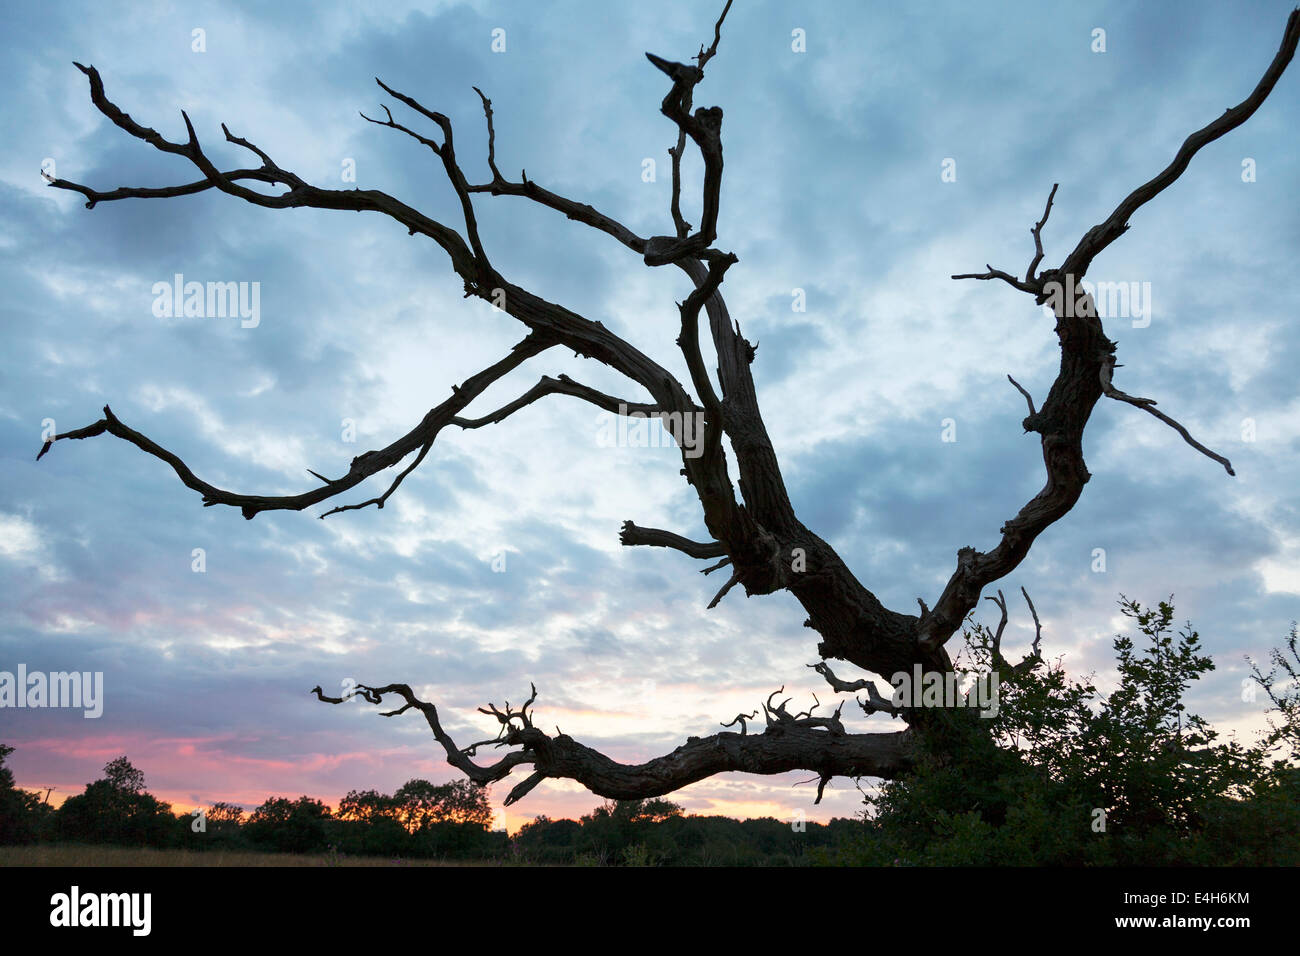 Old dead tree fallen branches diseased reaching out dramatic sky Cotswolds UK England - Stock Image